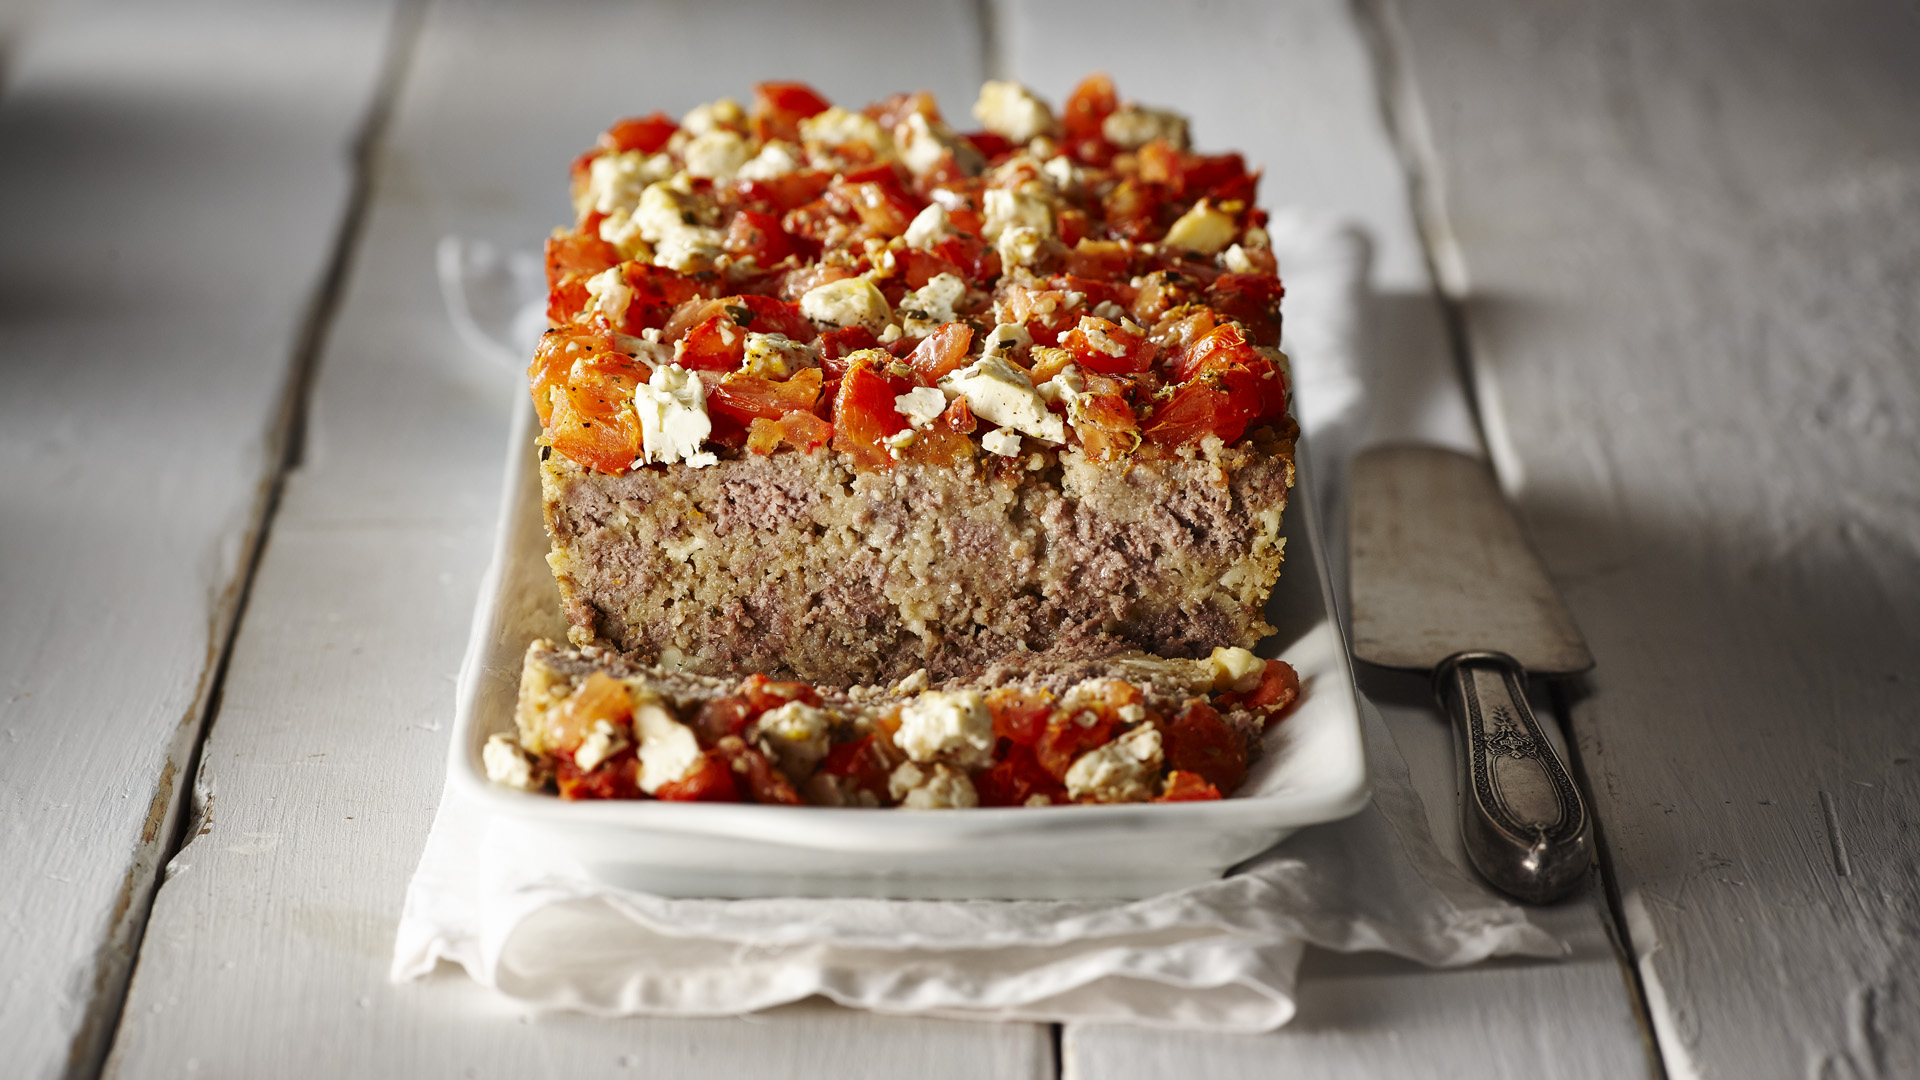 Meatloaf with tomatoes feta topping on white plate